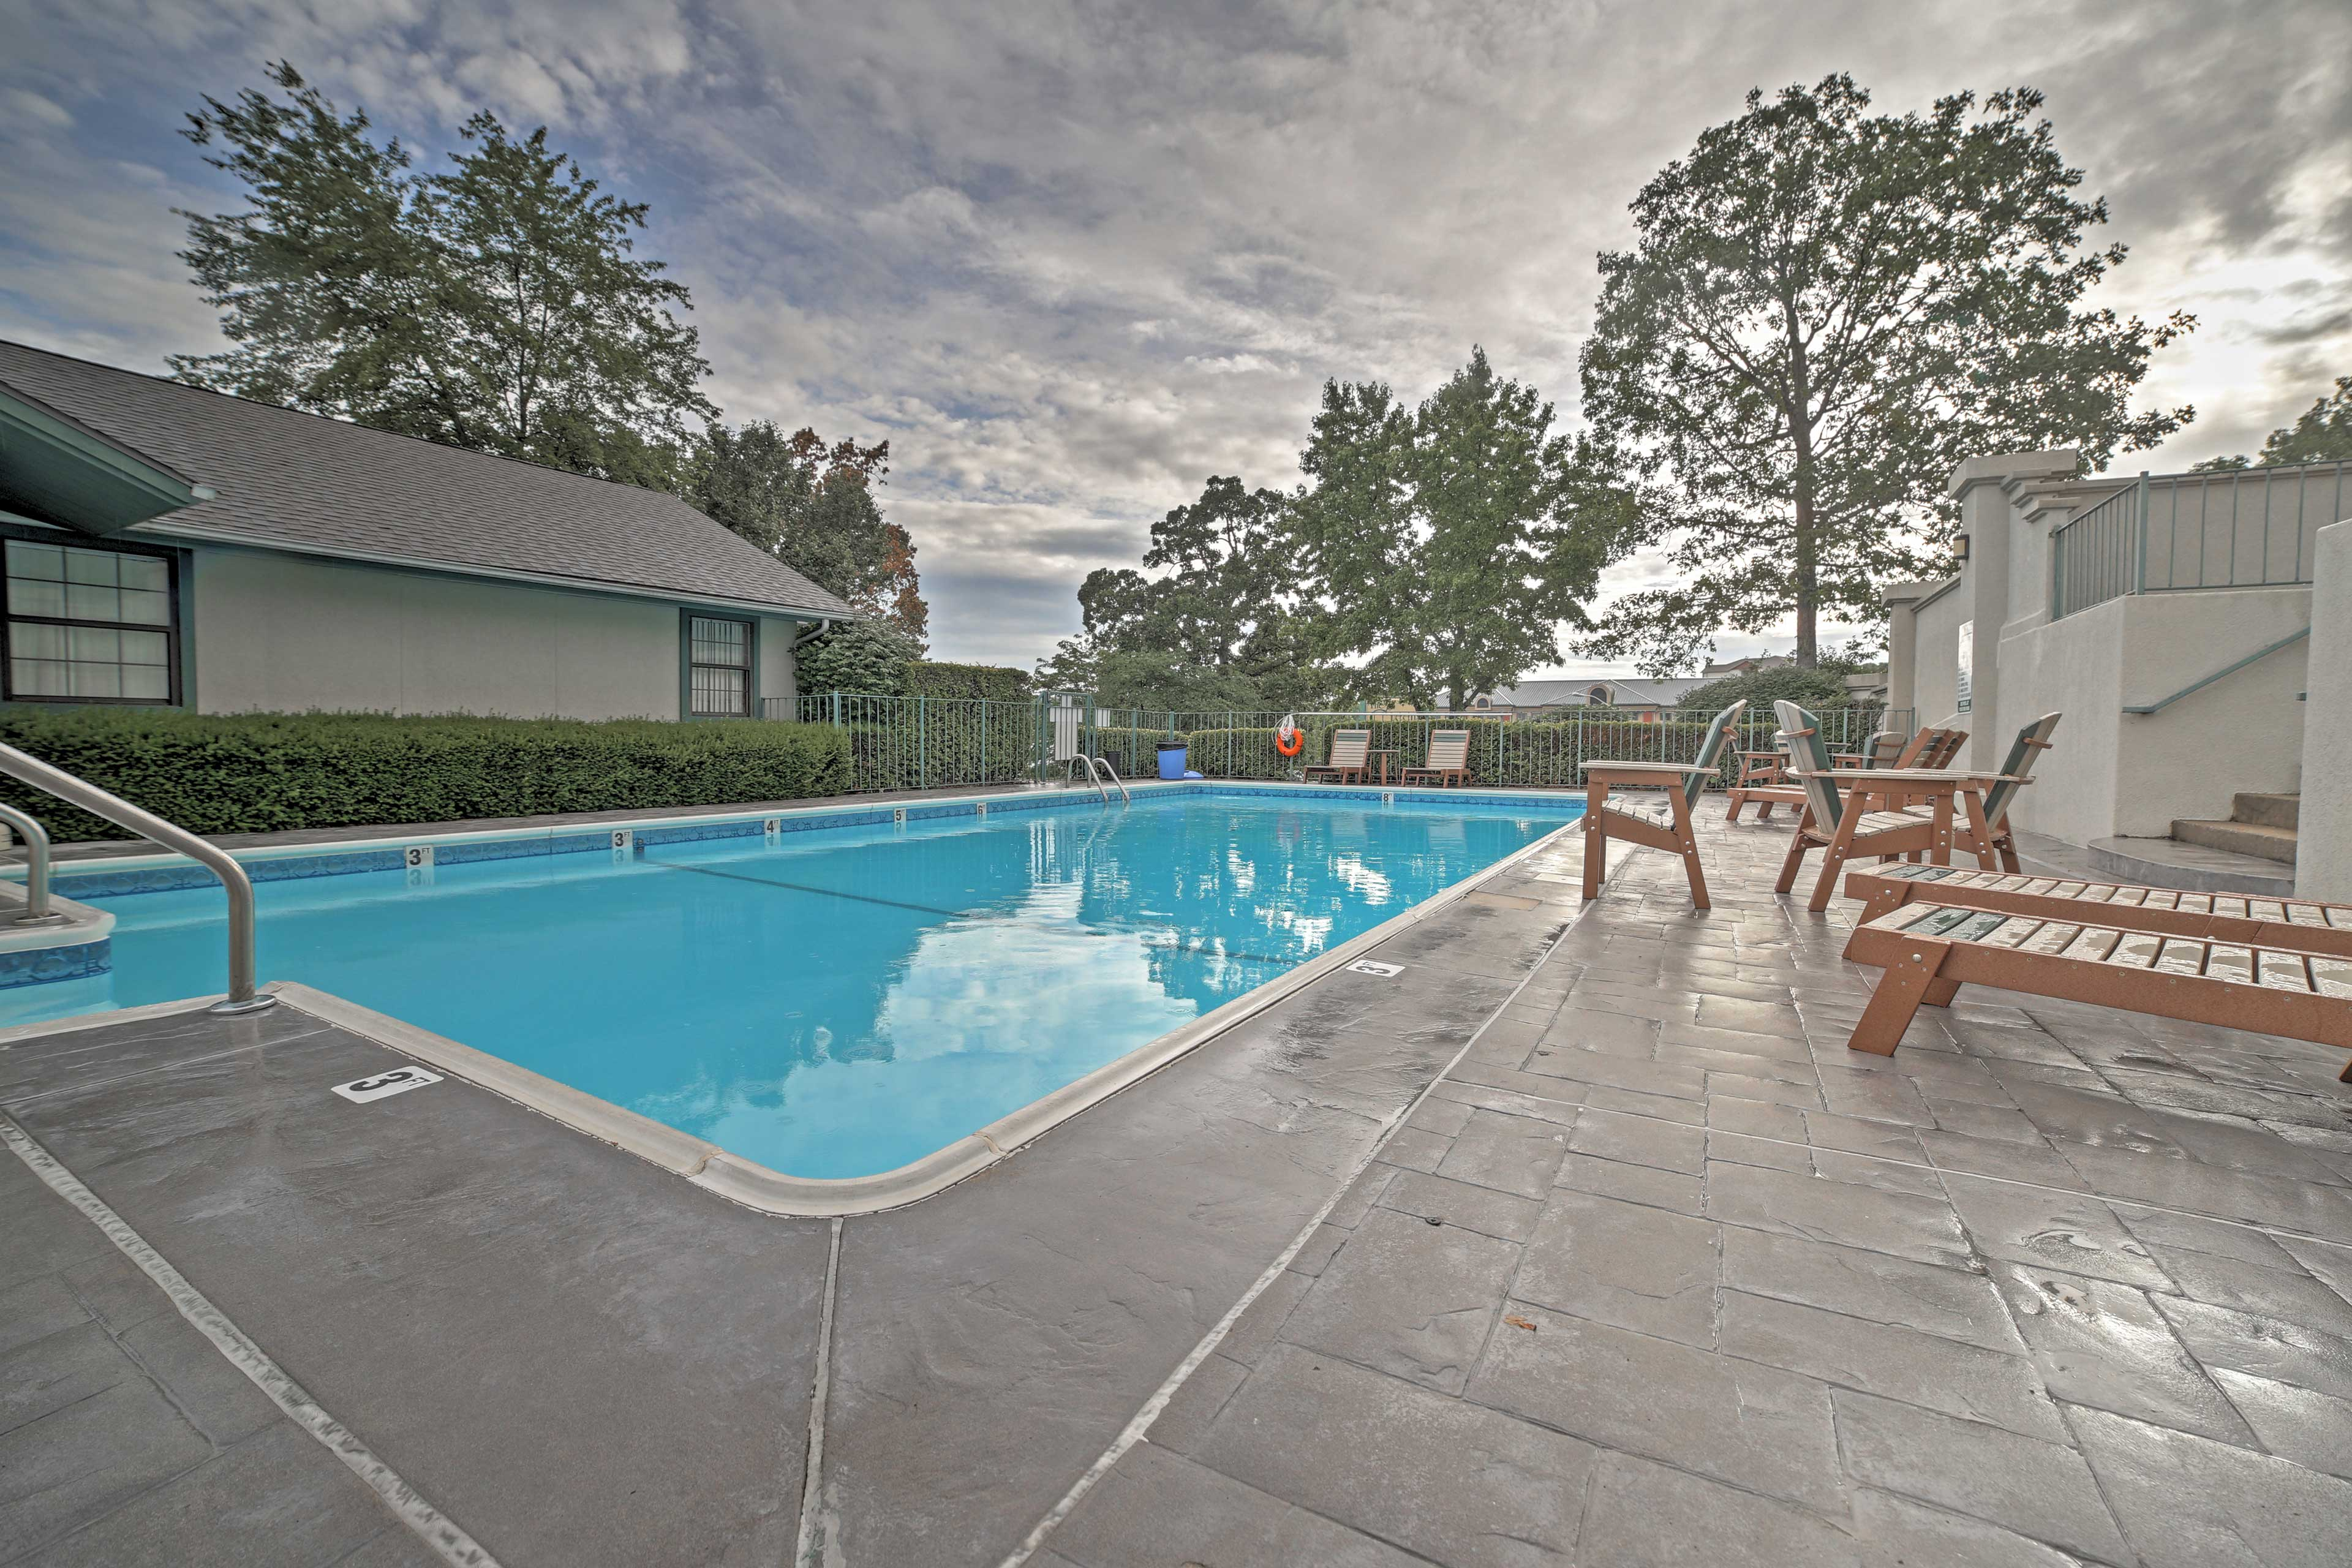 This 2-bed, 2-bath unit offers community amenities including a seasonal pool.